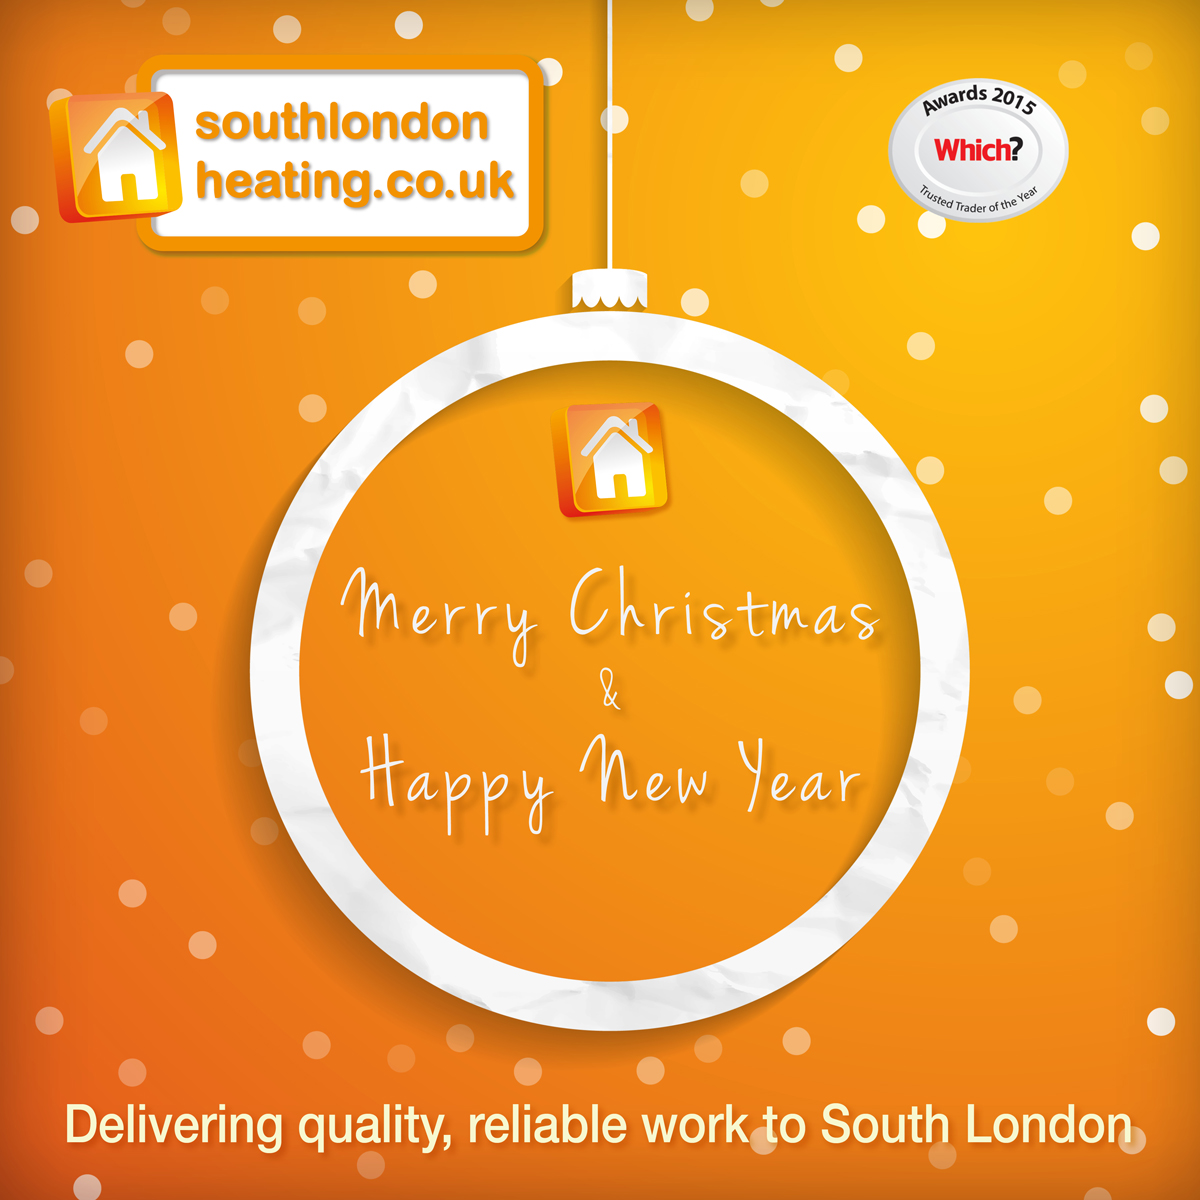 Merry Christmas and Happy New Year from South London Heating!